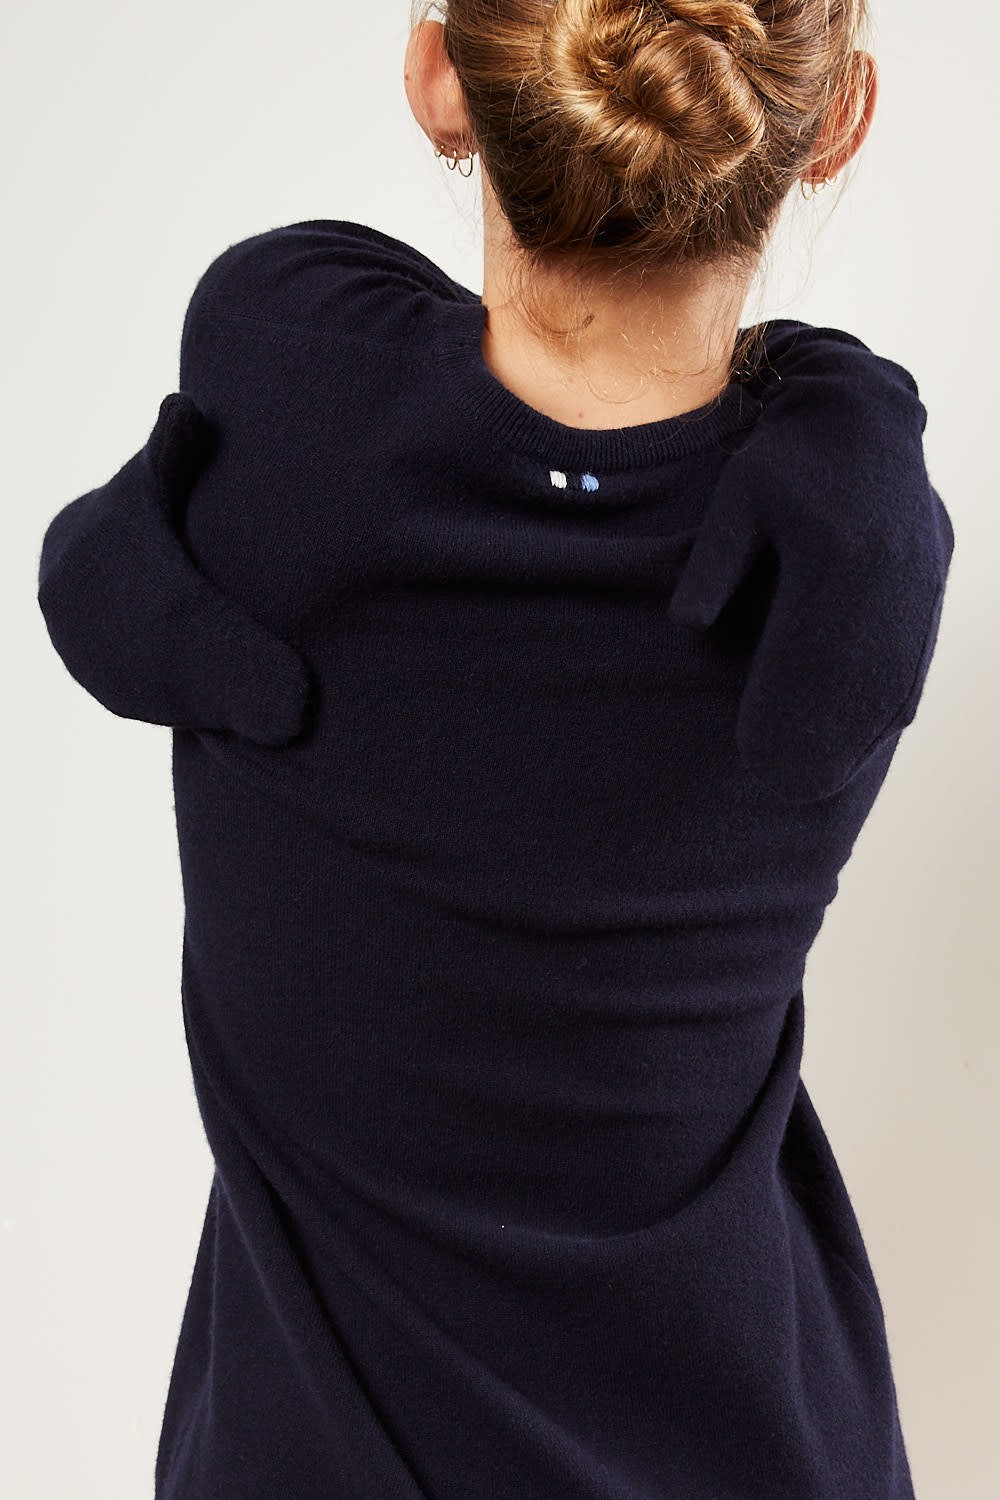 extreme cashmere - No79 ninja gloves with cotton ribbon